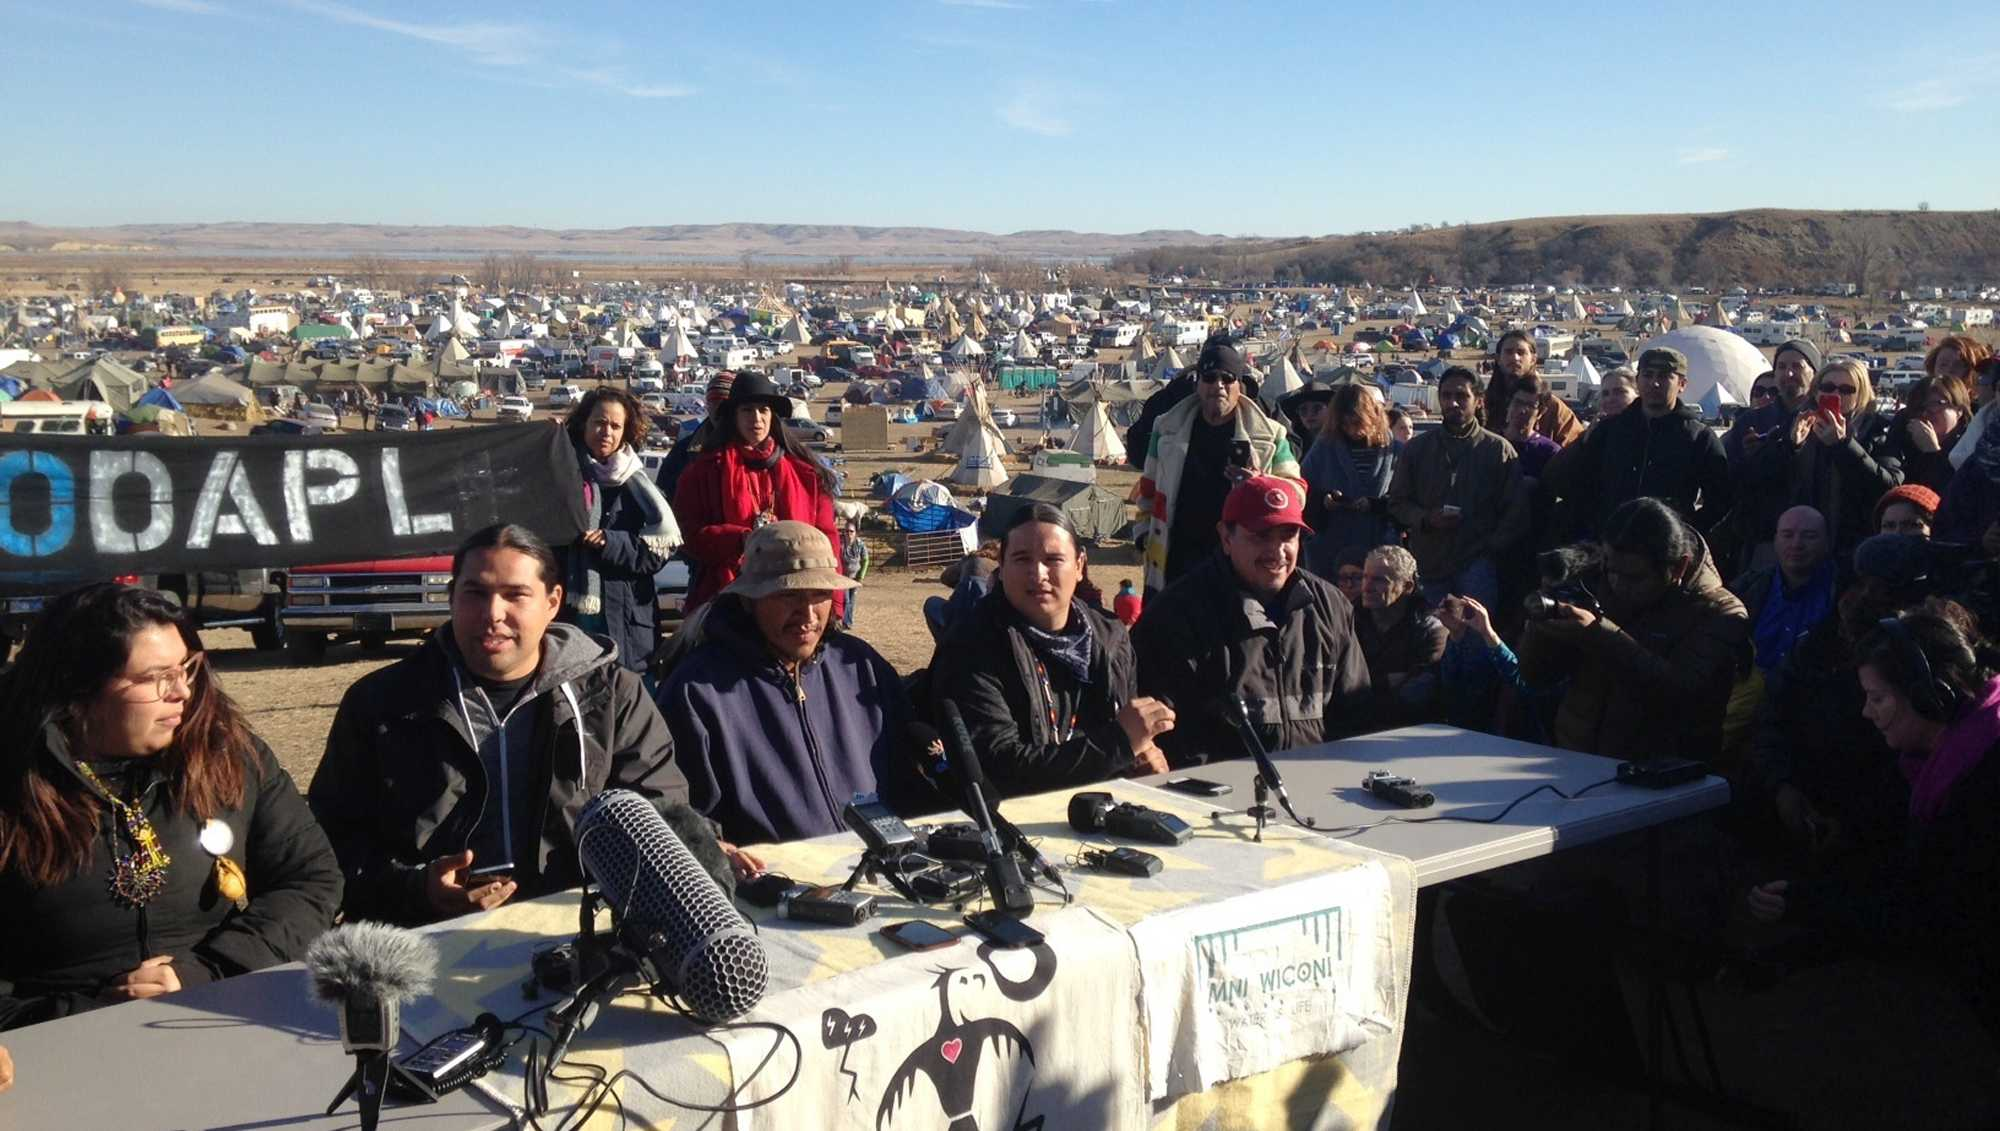 Organizers of protests against construction of the Dakota Access oil pipeline speak at a news conference on Saturday, Nov. 26, 2016, near Cannon Ball, N.D. They said they have a right to remain on land where they have been camped for months. They made the statement a day after tribal leaders received a letter from the U.S. Army Corps of Engineers, telling them the land would be closed to the public on Dec. 5.